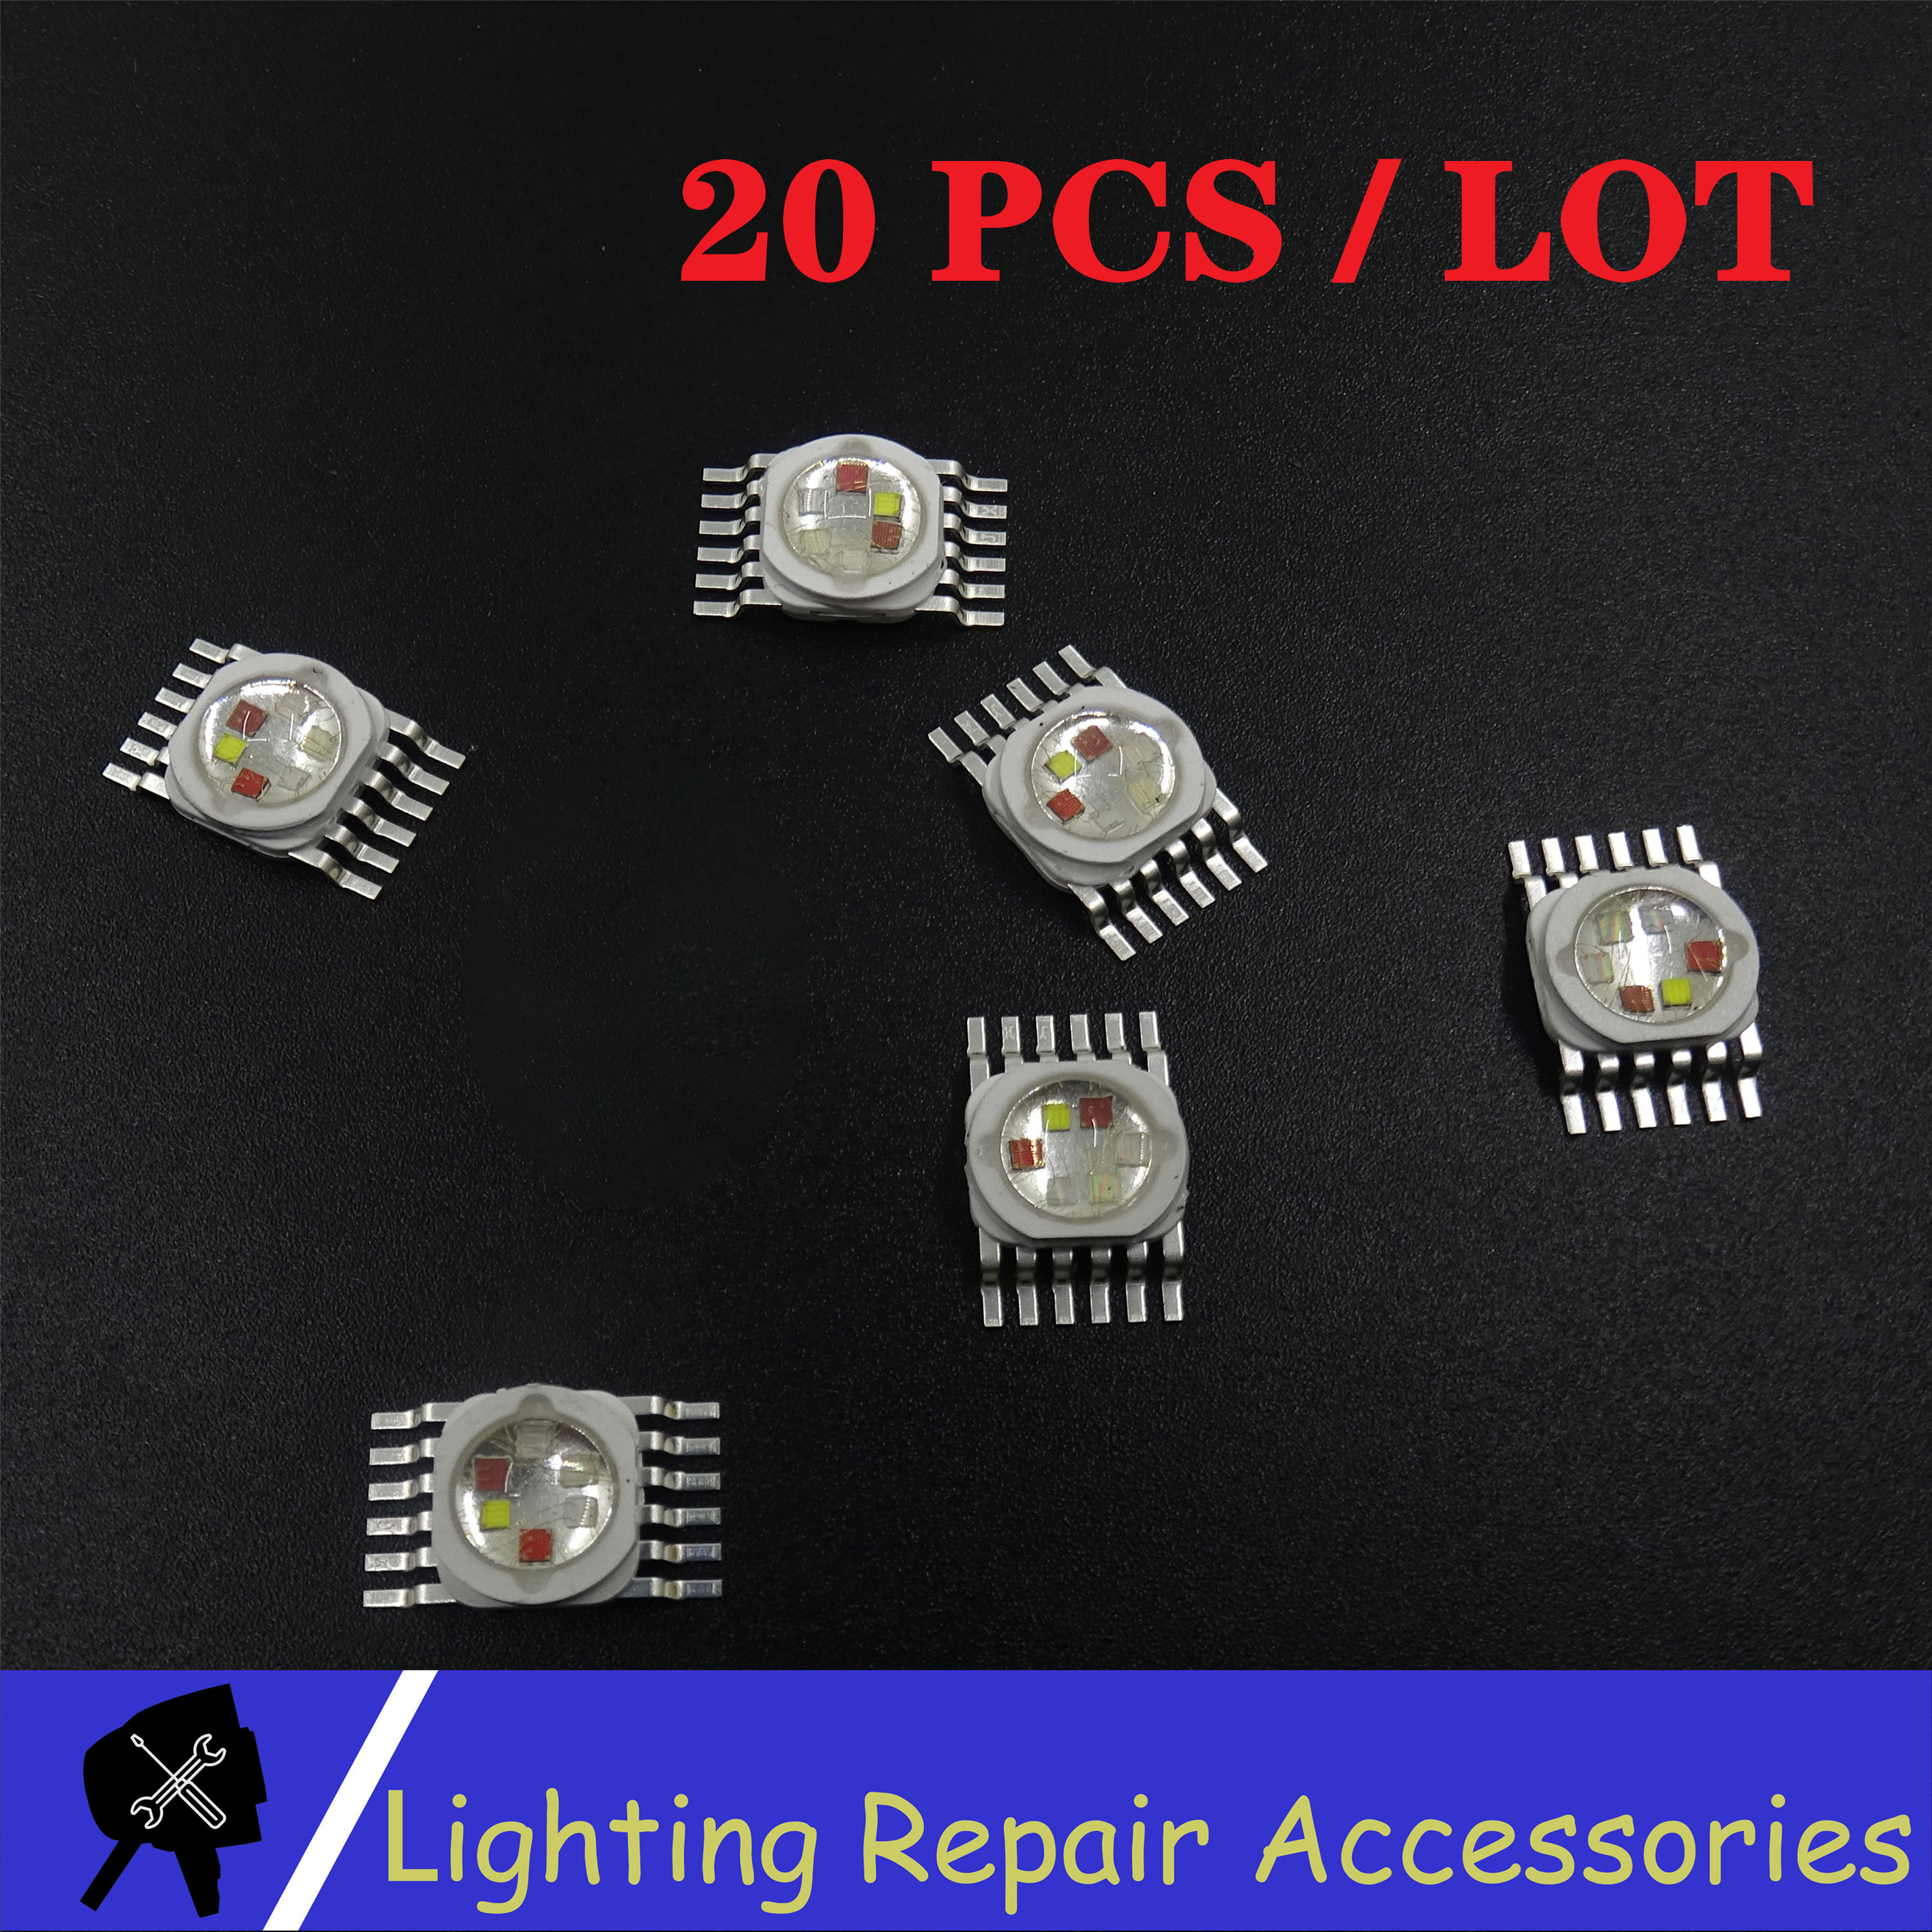 20 Pcs/pack JINGXING 6W 12w 18w RGBWA UV 6 In 1 LED Bead Lamp Source Led Chip LED Lamp Bead Led Light For Led Stage Lighting